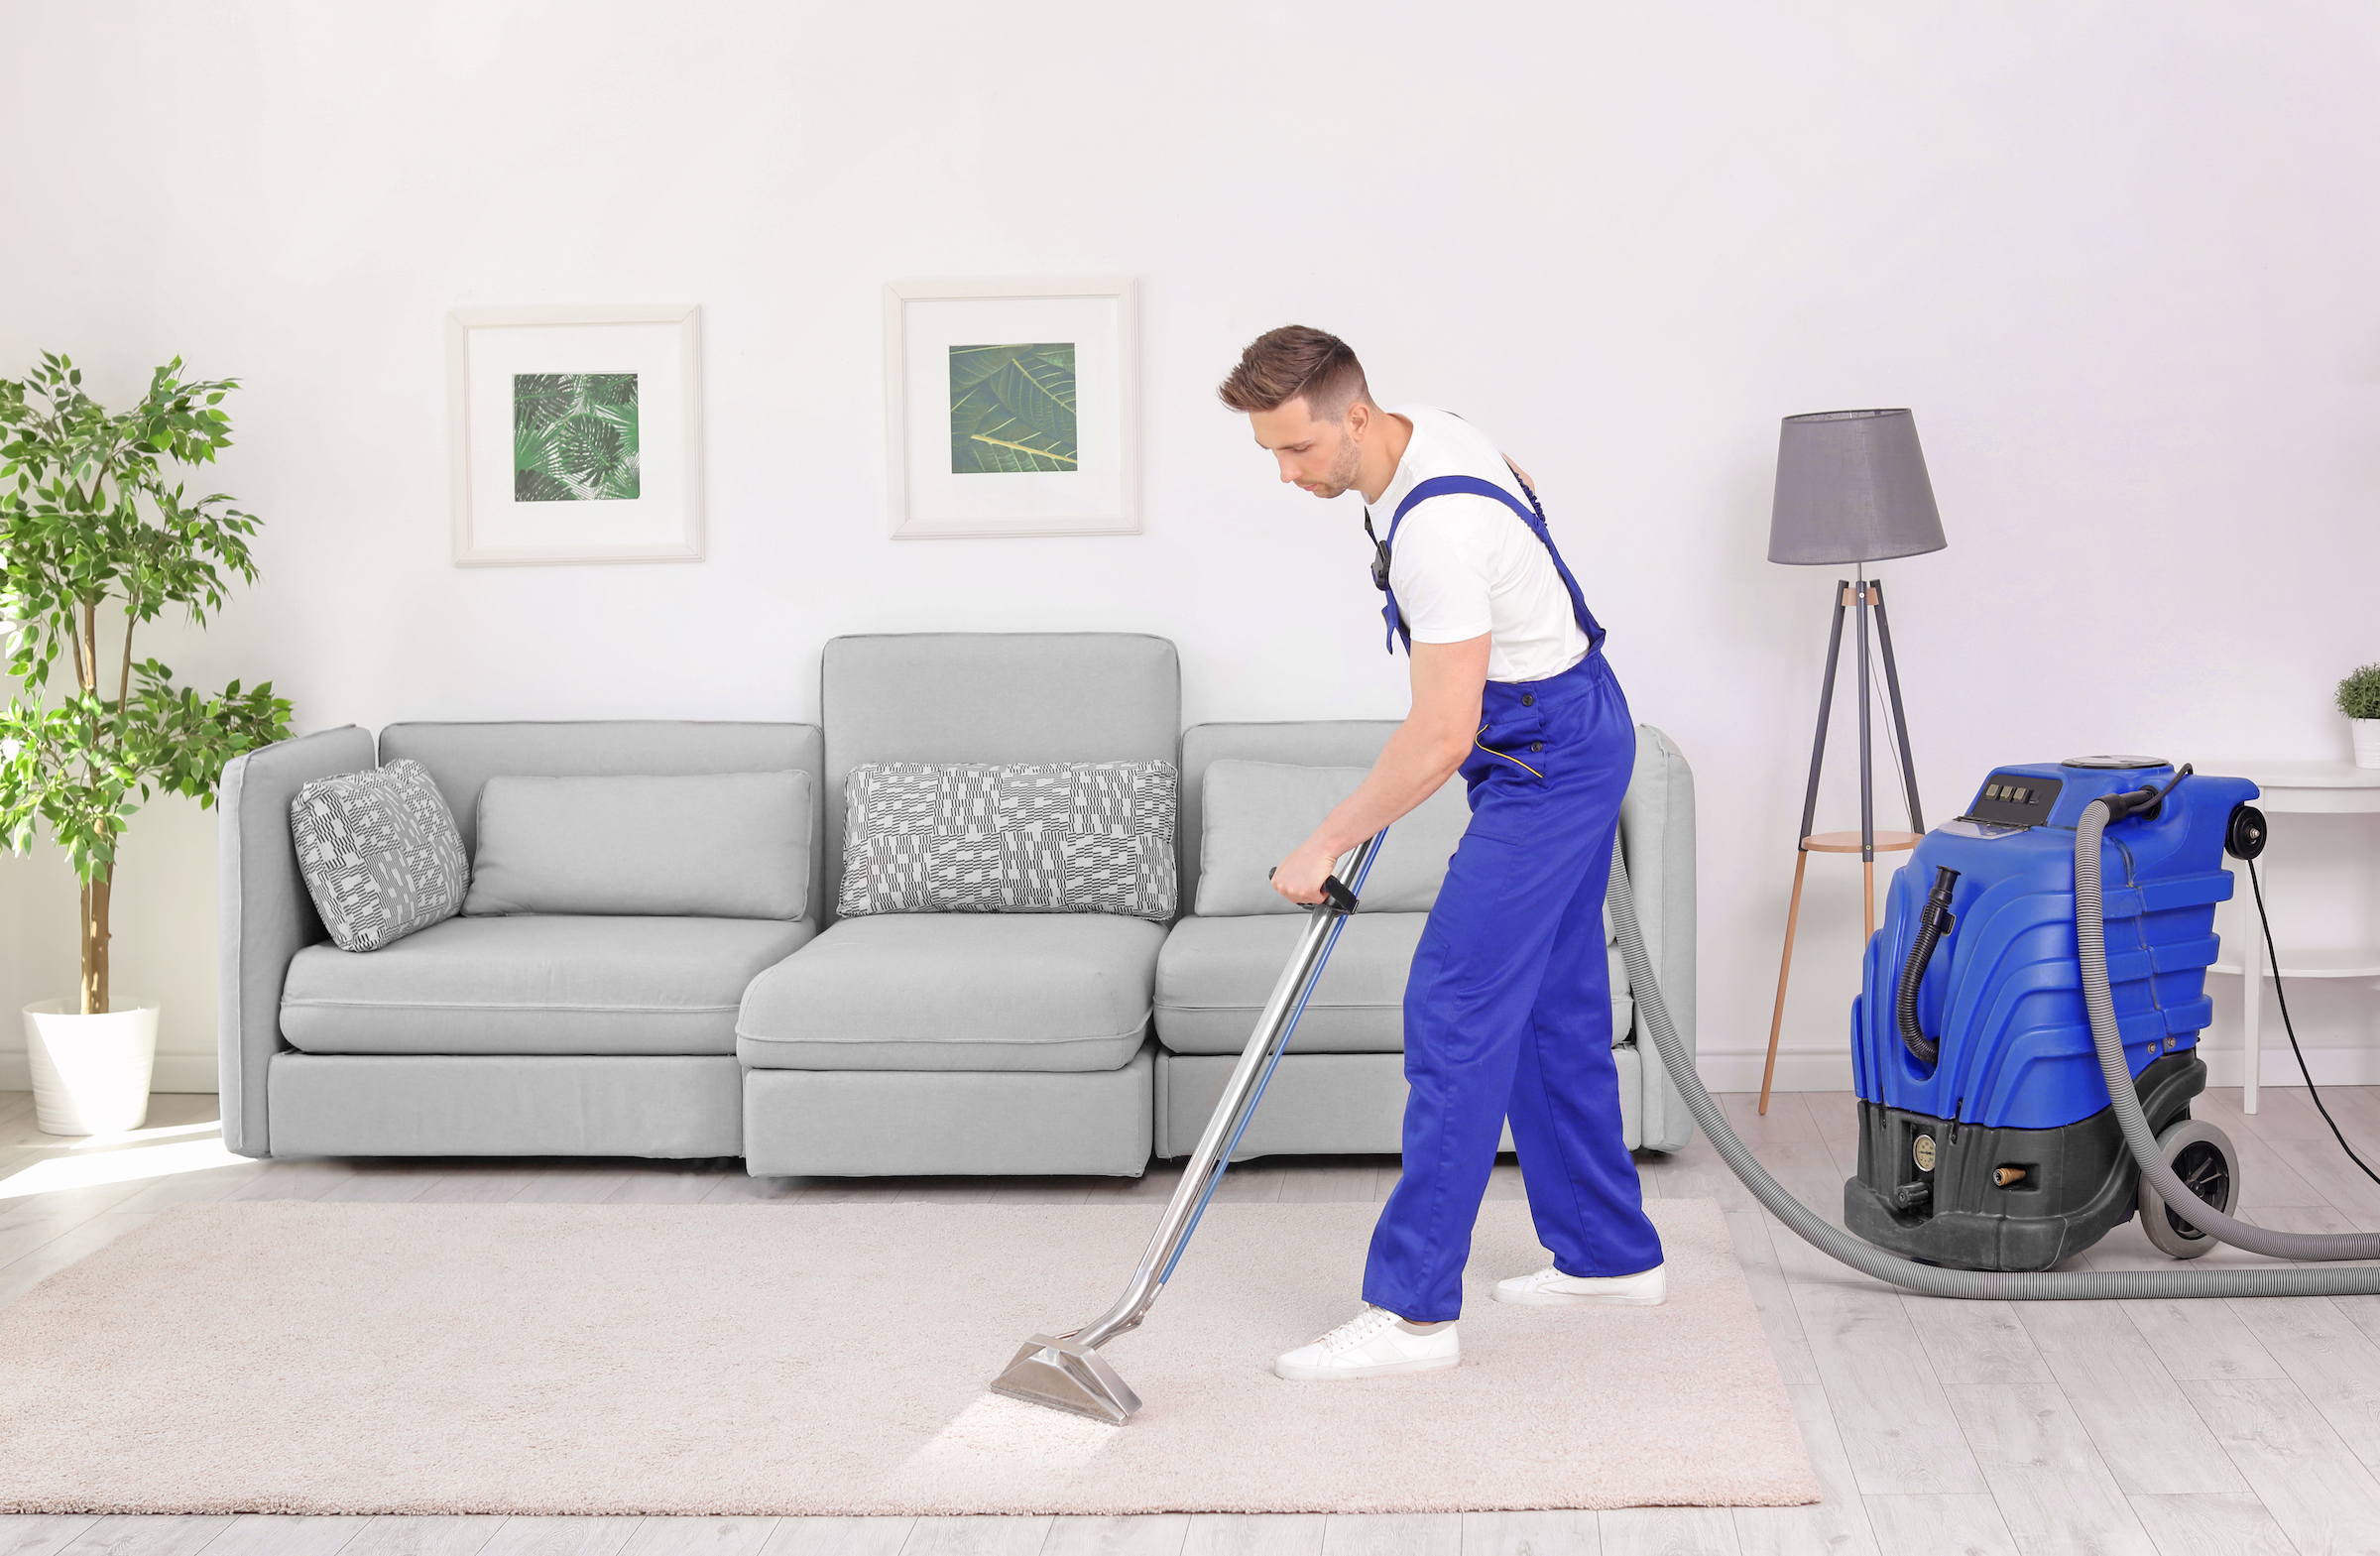 How to clean a rug: find professional cleaners near you.